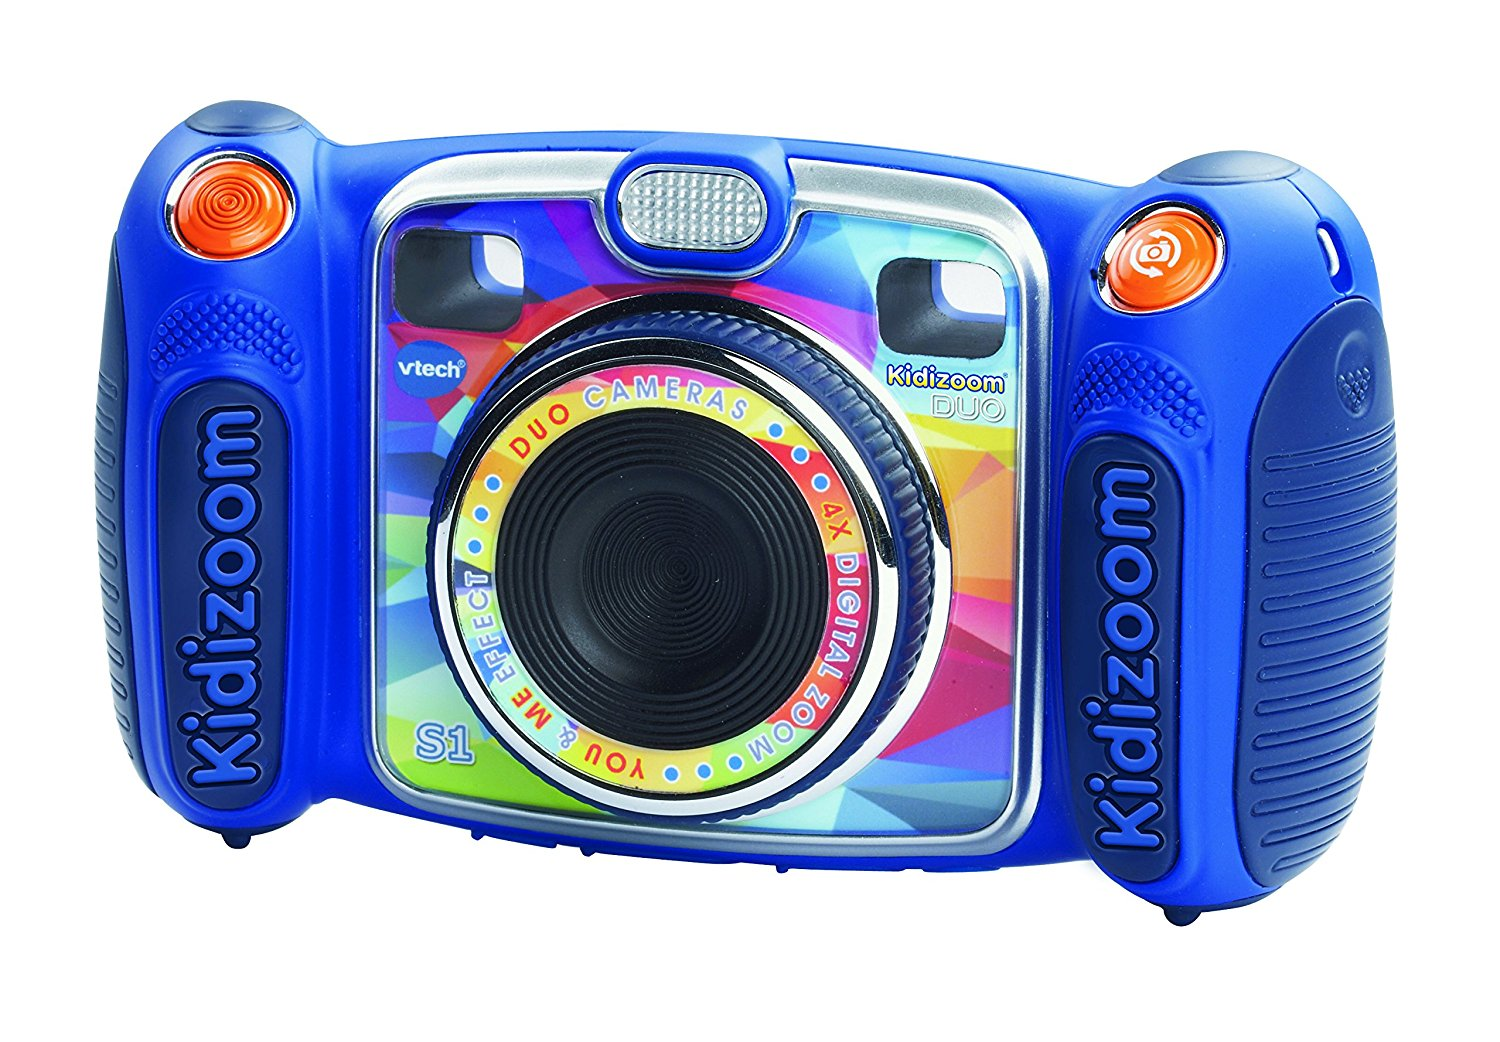 opiniones Vtech Kidizoom Duo S1